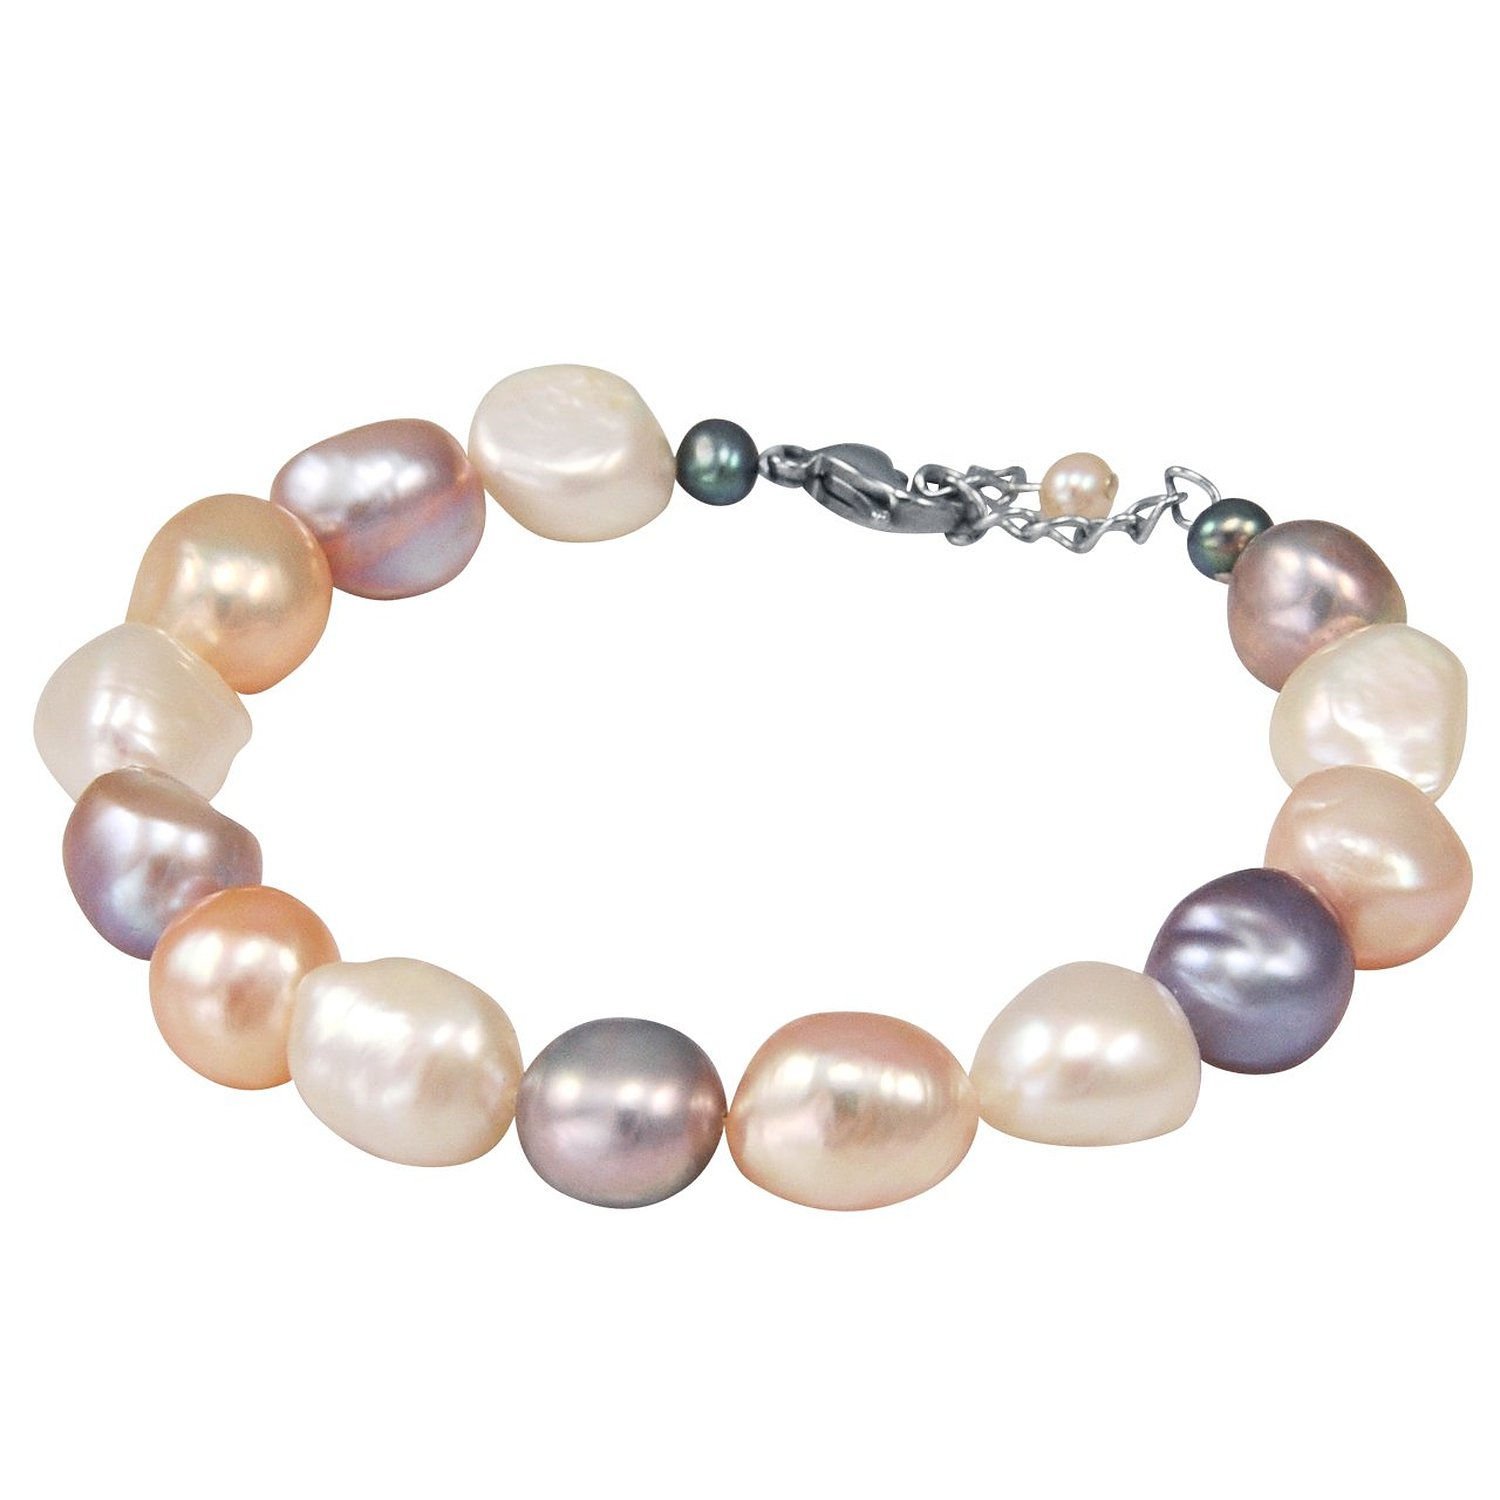 "9mm cultured pearl bracelet w. stainless steel clasp 7"" with 1"" chain tail: jewelry"